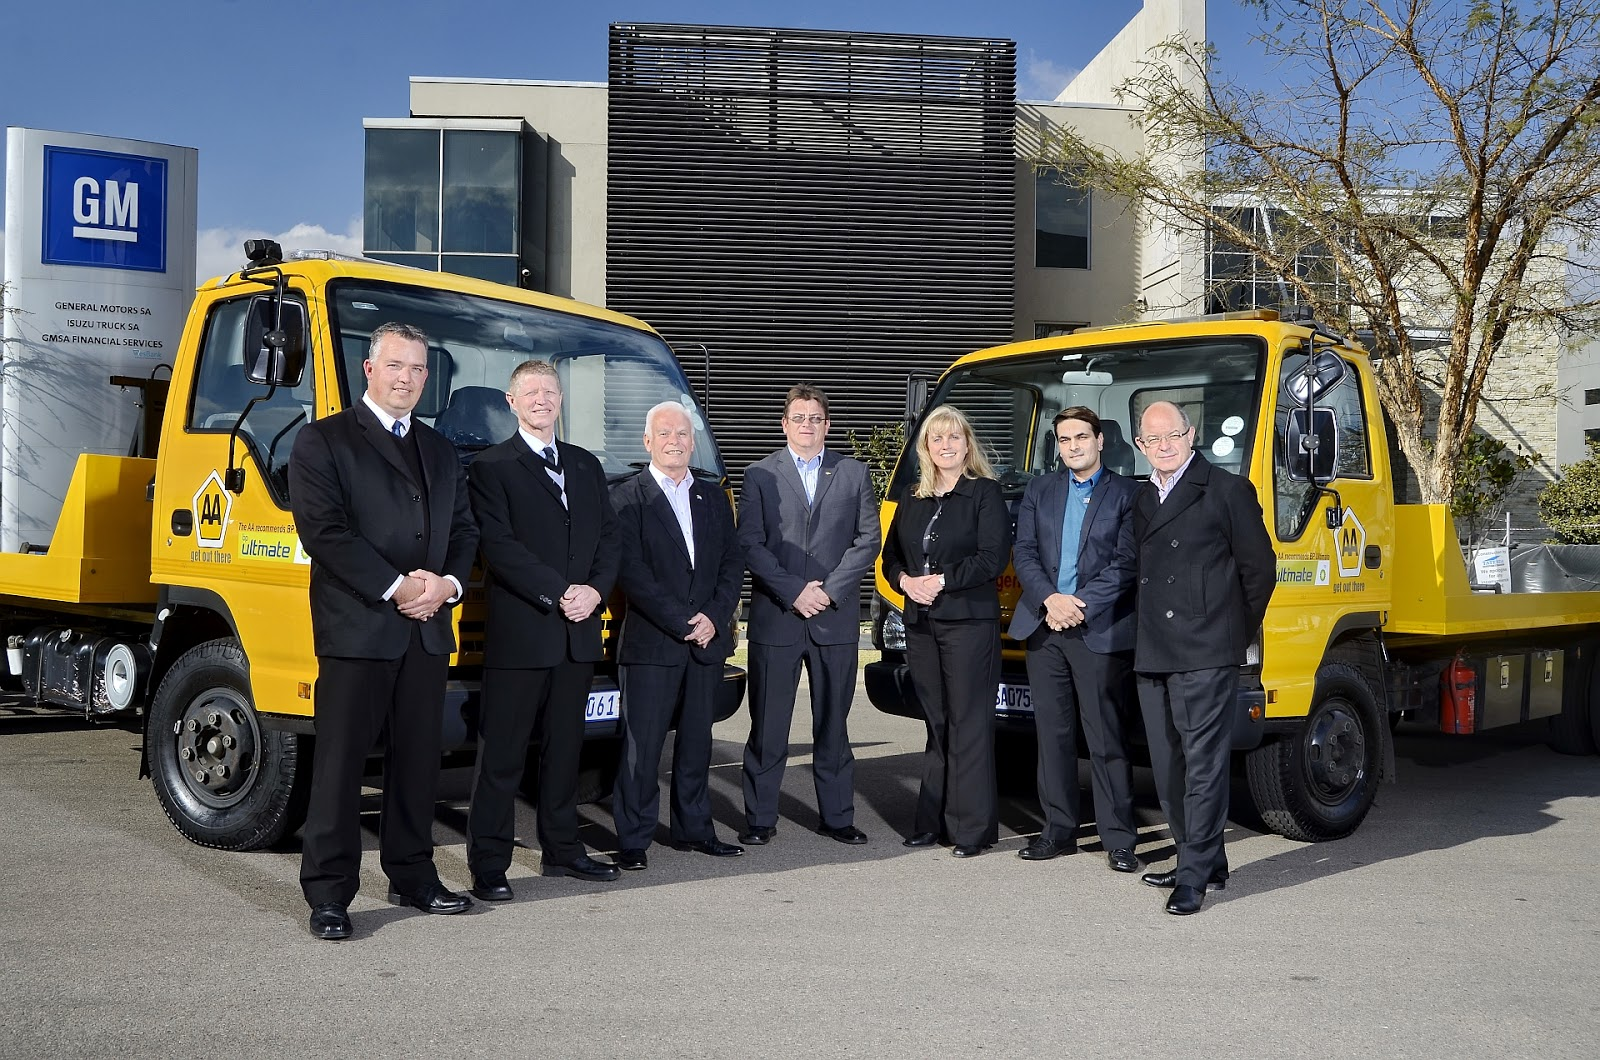 In4ride General Motors Teams Up With The Aa